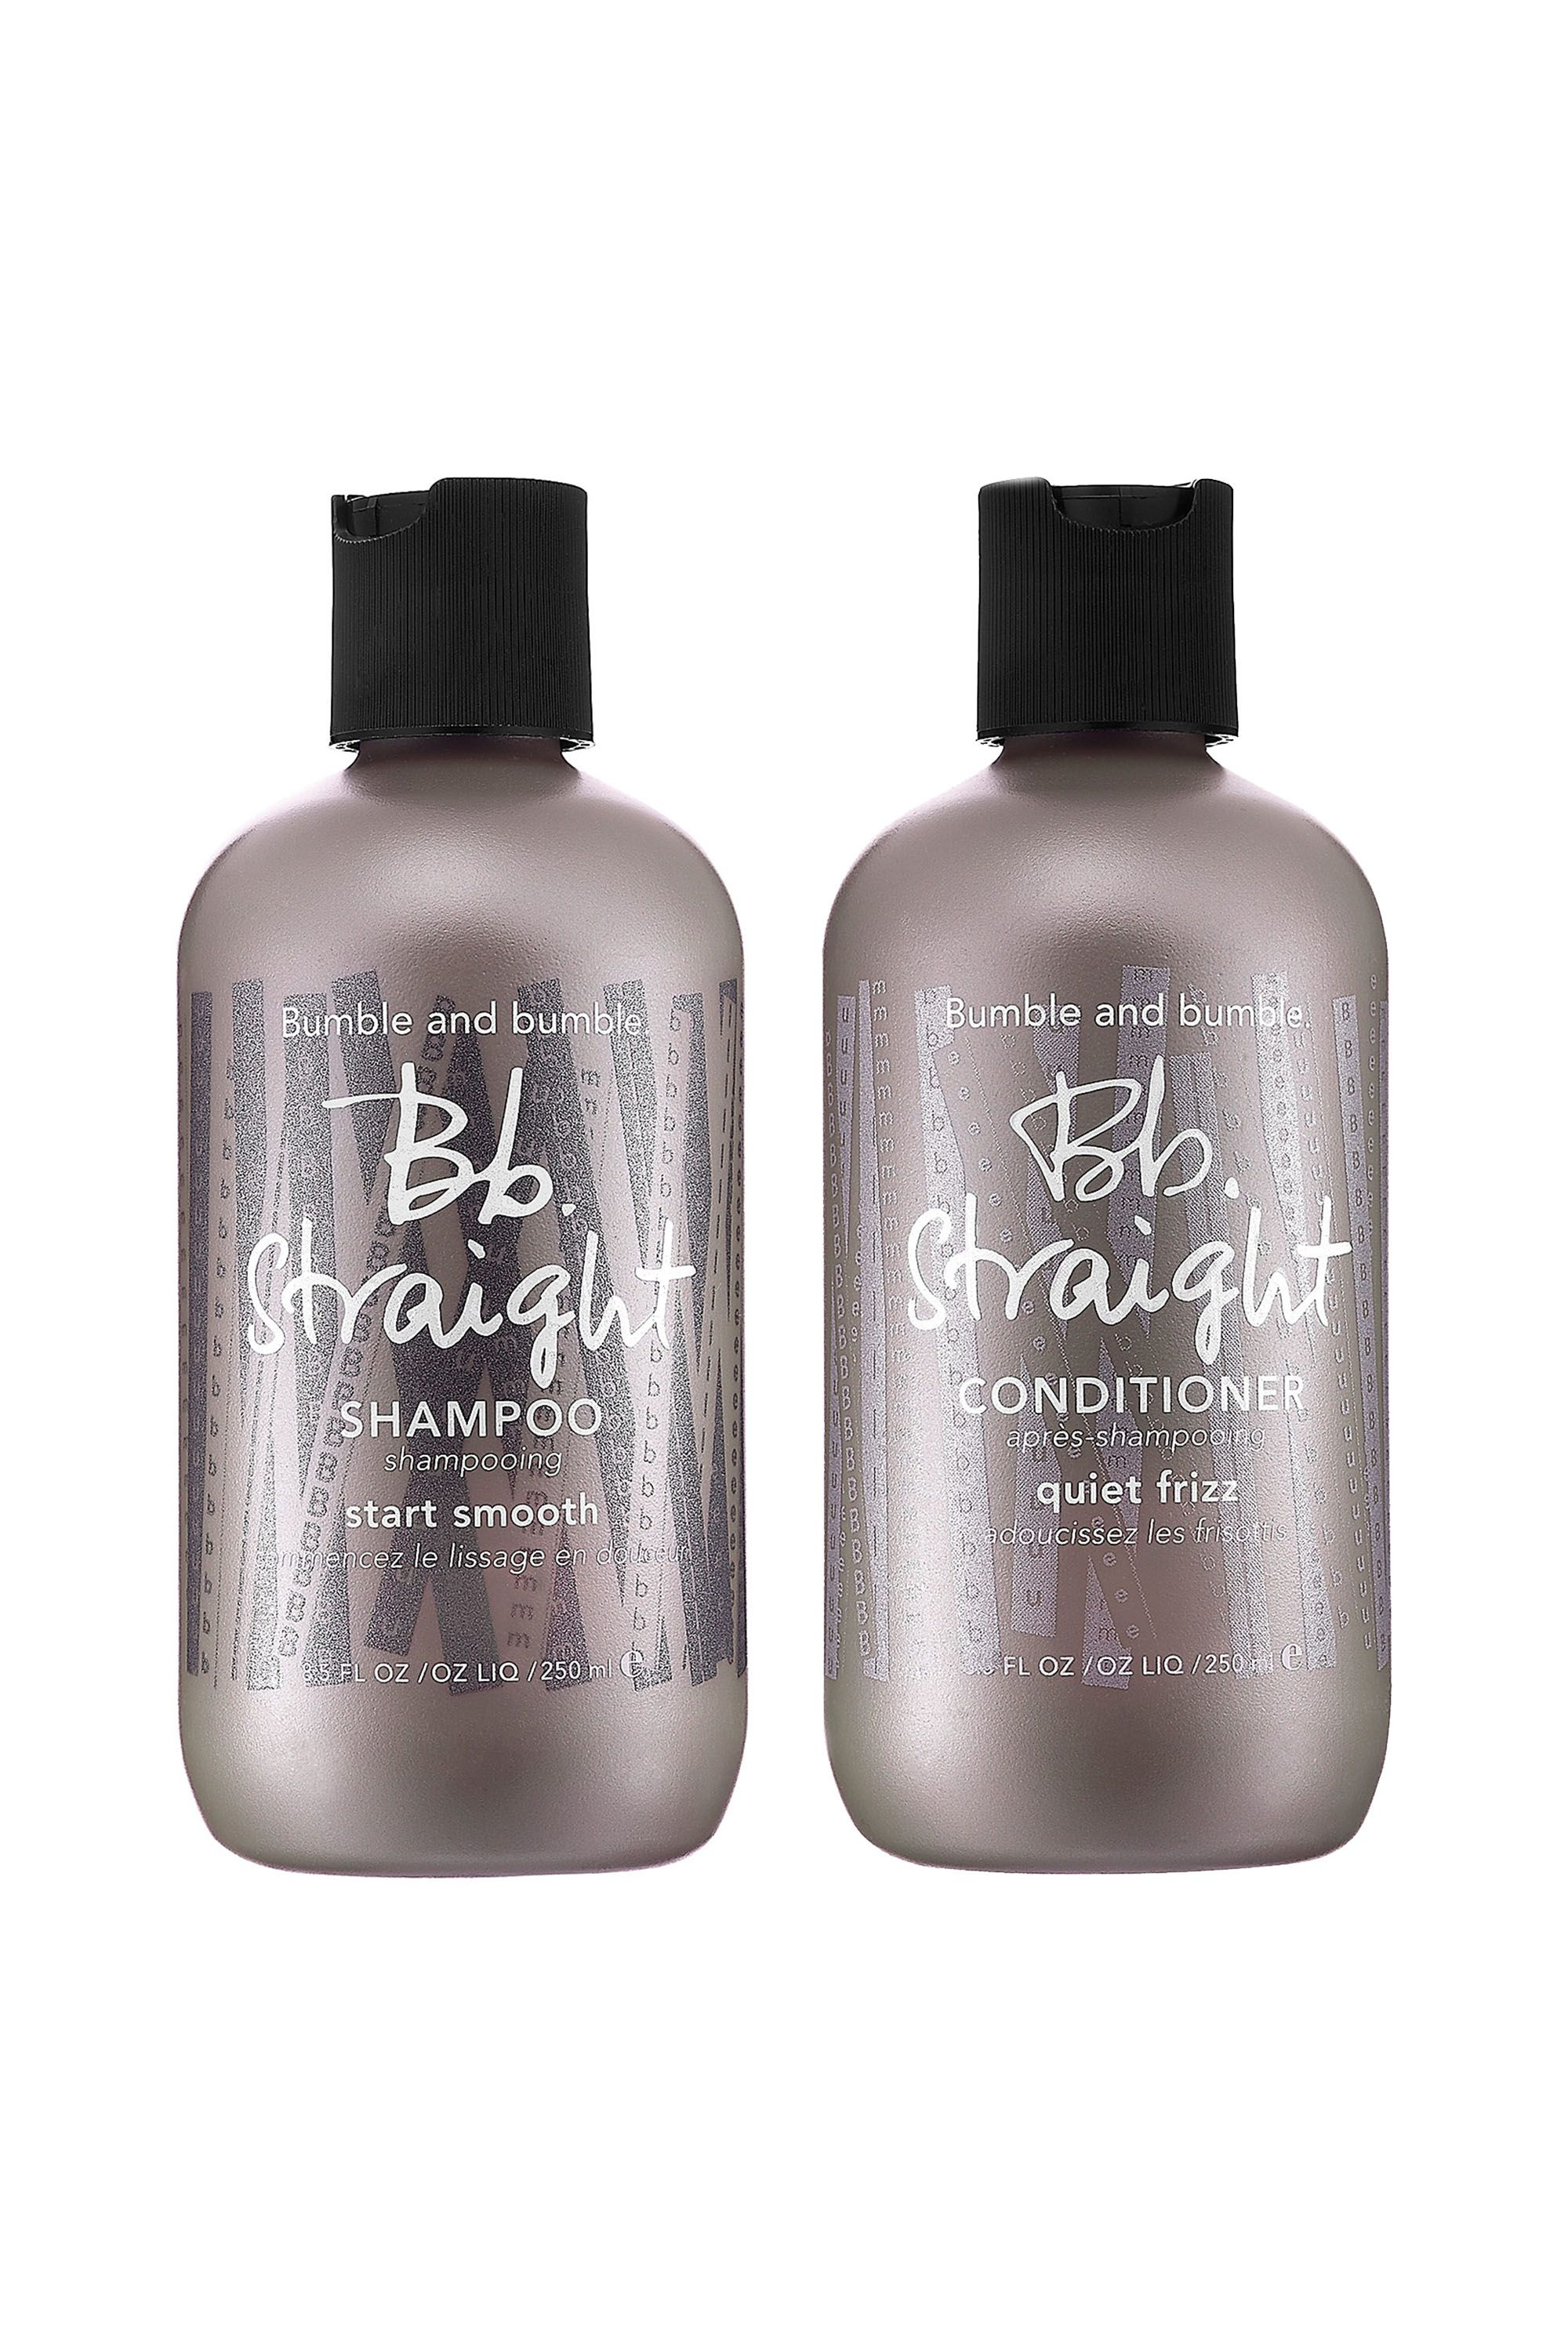 "<p>Let's start with the fact that I fully buy into the likely myth that your shampoo and conditioner have to match. It's like a bra-underwear set. No real reason that they have to go together, but you feel like such a lady when they do. Anyway! The point is these products work like a dream. I've been loyal to Bumble and Bumble haircare for at least a decade, but I've only been evangelical about this particular line for a year or two. My brilliant goddess hair colorist at the downtown salon recommended it for my decidedly wavy hair, promising it could minimize the frizz without compromising the curl. Good woman! It worked.- Mattie Kahn, ELLLE.com News Writer</p><p><i data-redactor-tag=""i"">Bumble and bumble Straight Shampoo, $31; <a href=""http://www.sephora.com/straight-shampoo-P297552?"" target=""_blank"">sephora.com</a></i></p><p><i data-redactor-tag=""i"">Bumble and bumble Straight Conditioner, $34; <a href=""http://www.sephora.com/straight-conditioner-P297553?"" target=""_blank"">sephora.com</a></i></p>"